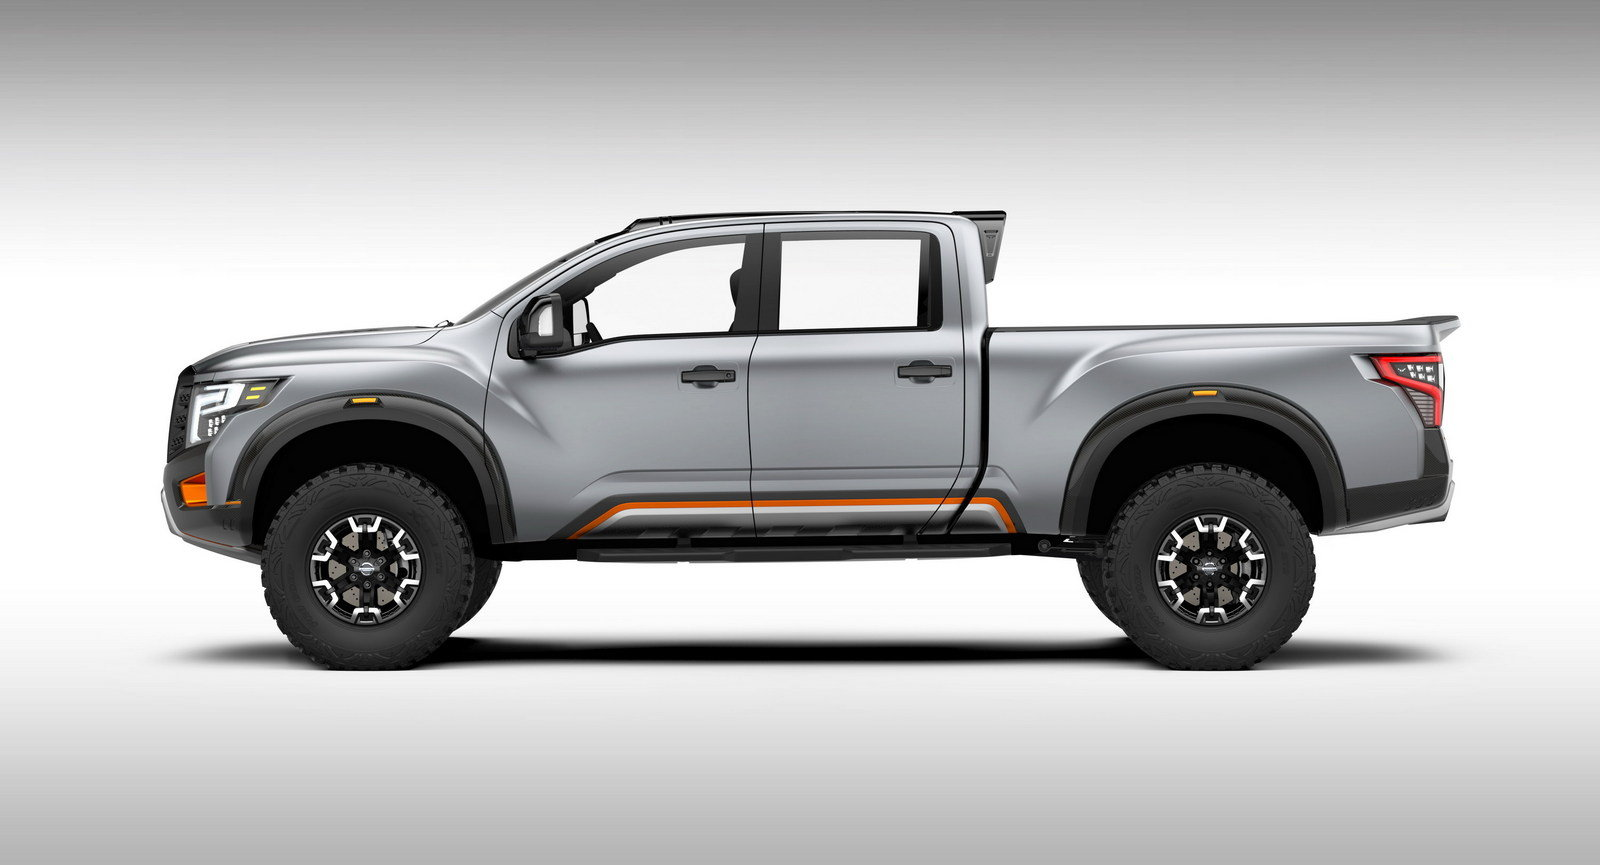 2016 nissan titan warrior concept picture 661573 truck review top speed. Black Bedroom Furniture Sets. Home Design Ideas